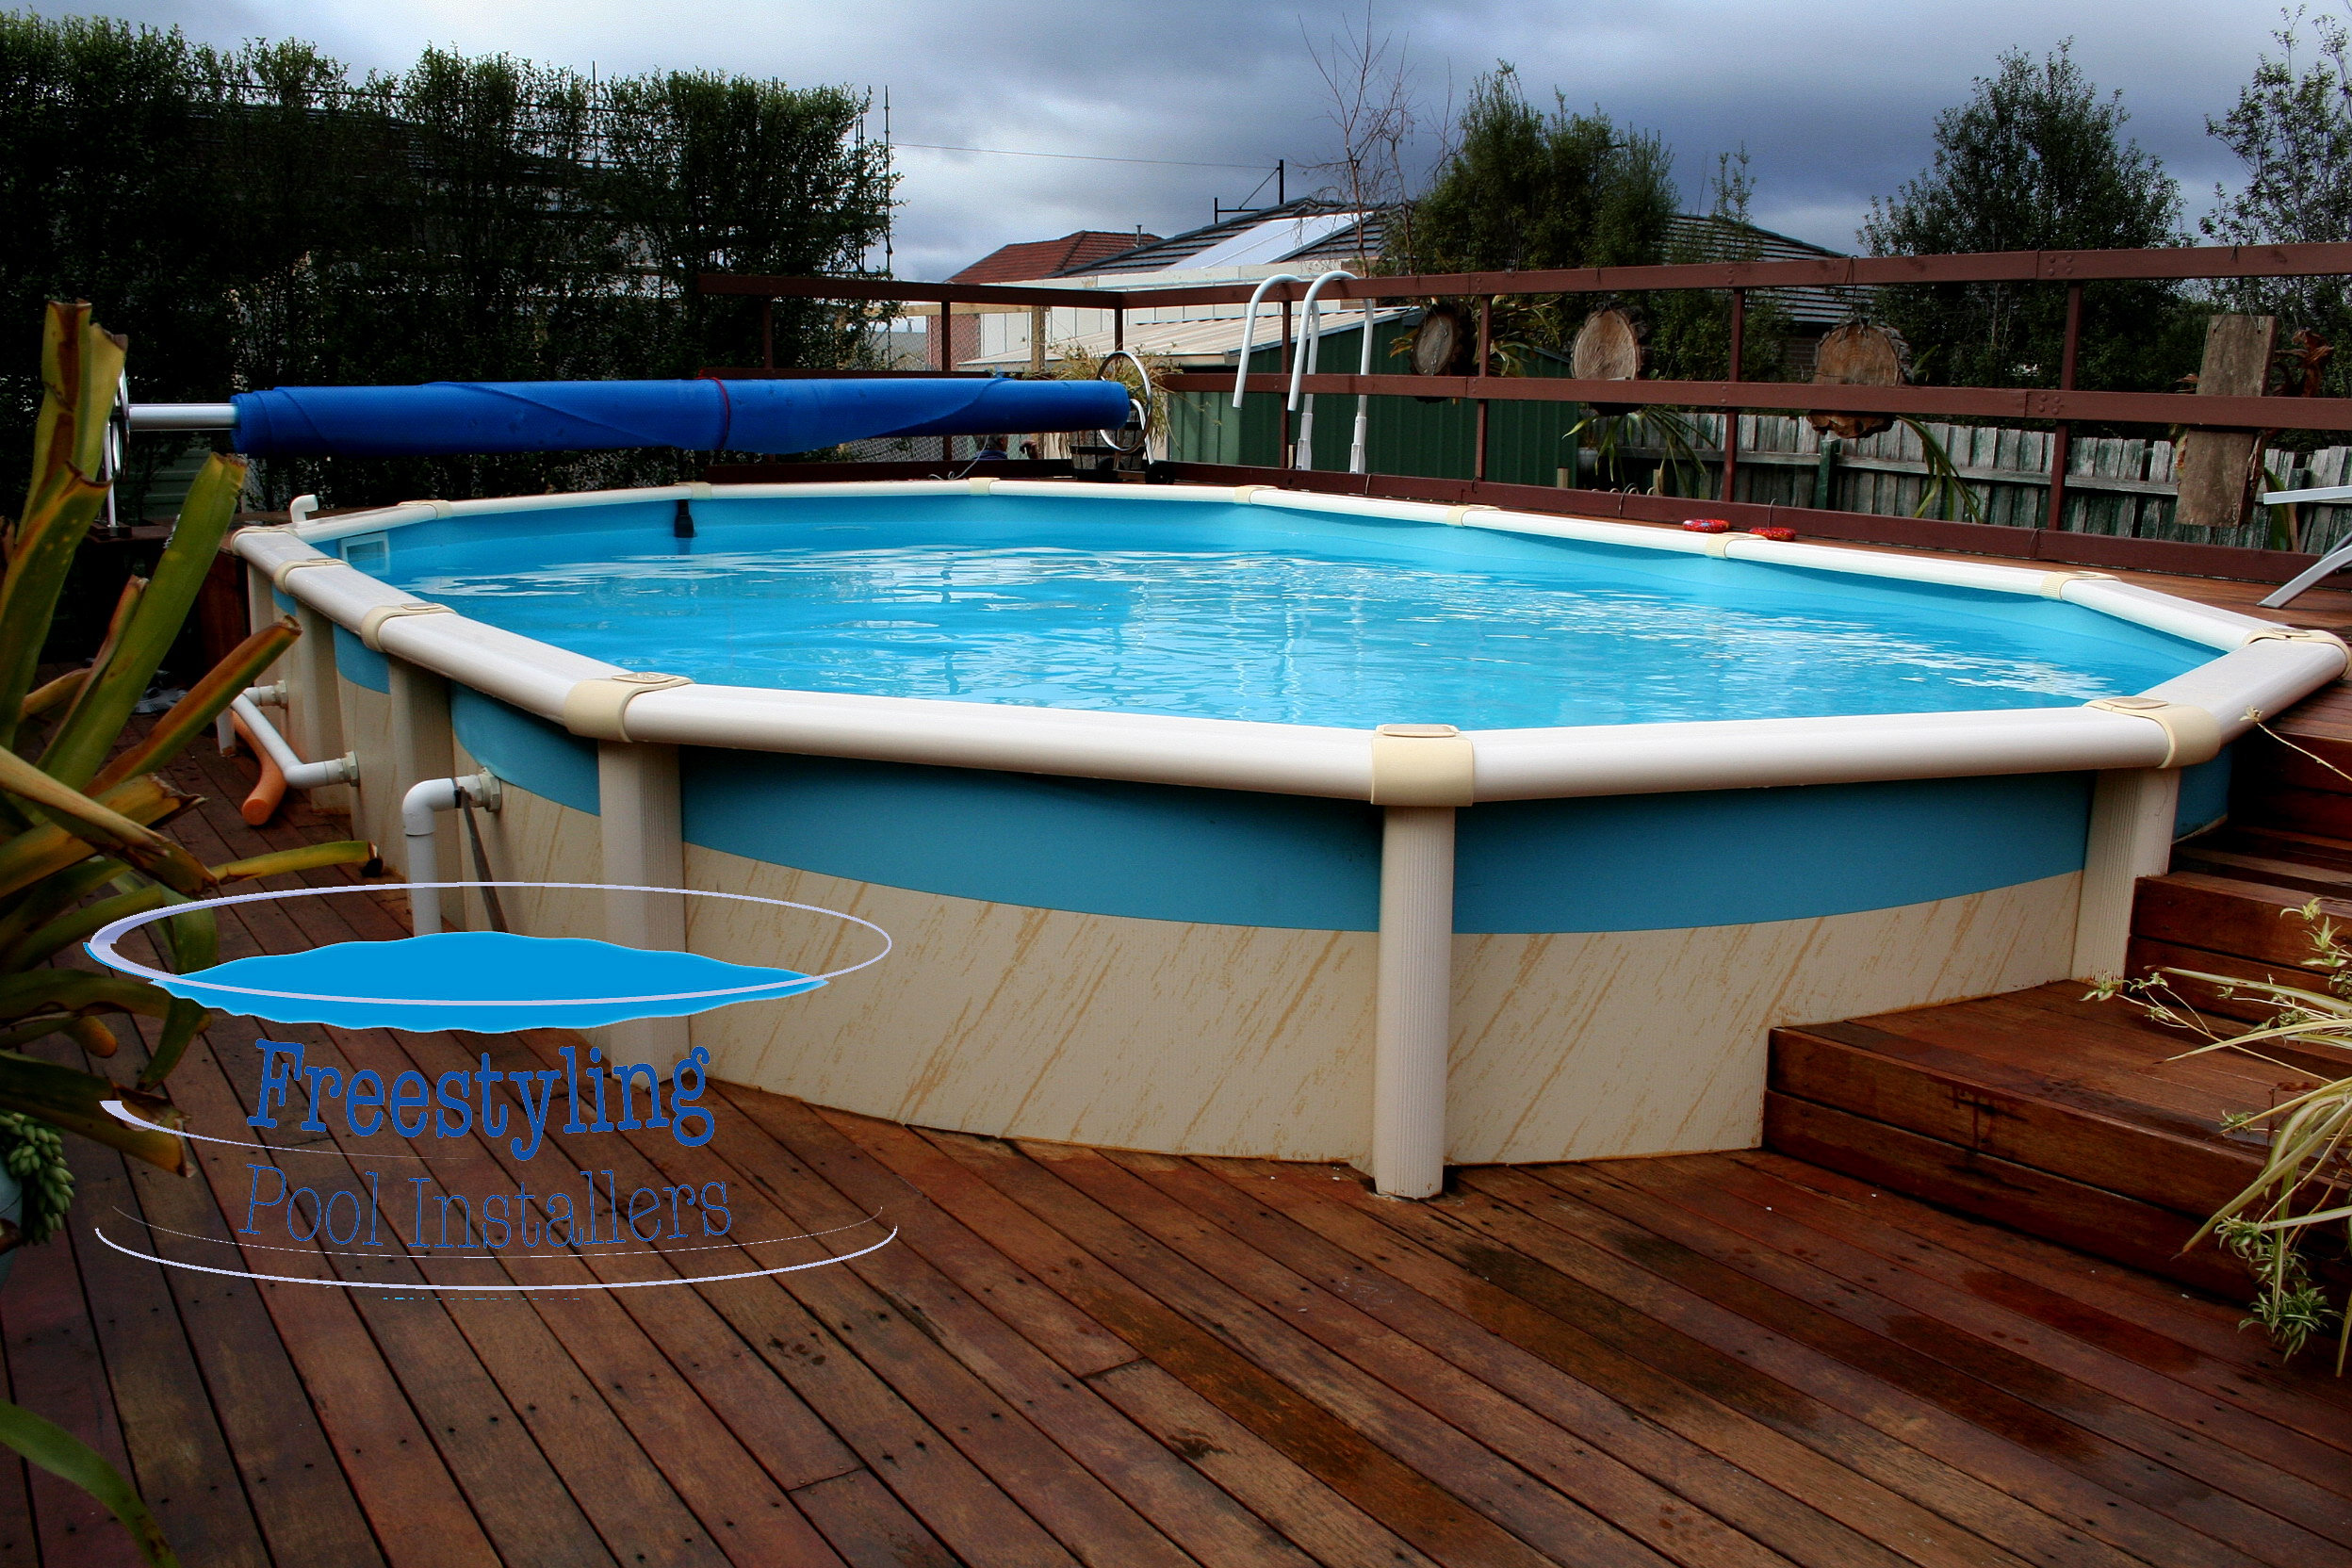 Freestyling Pool Installers Melton Melbourne Above